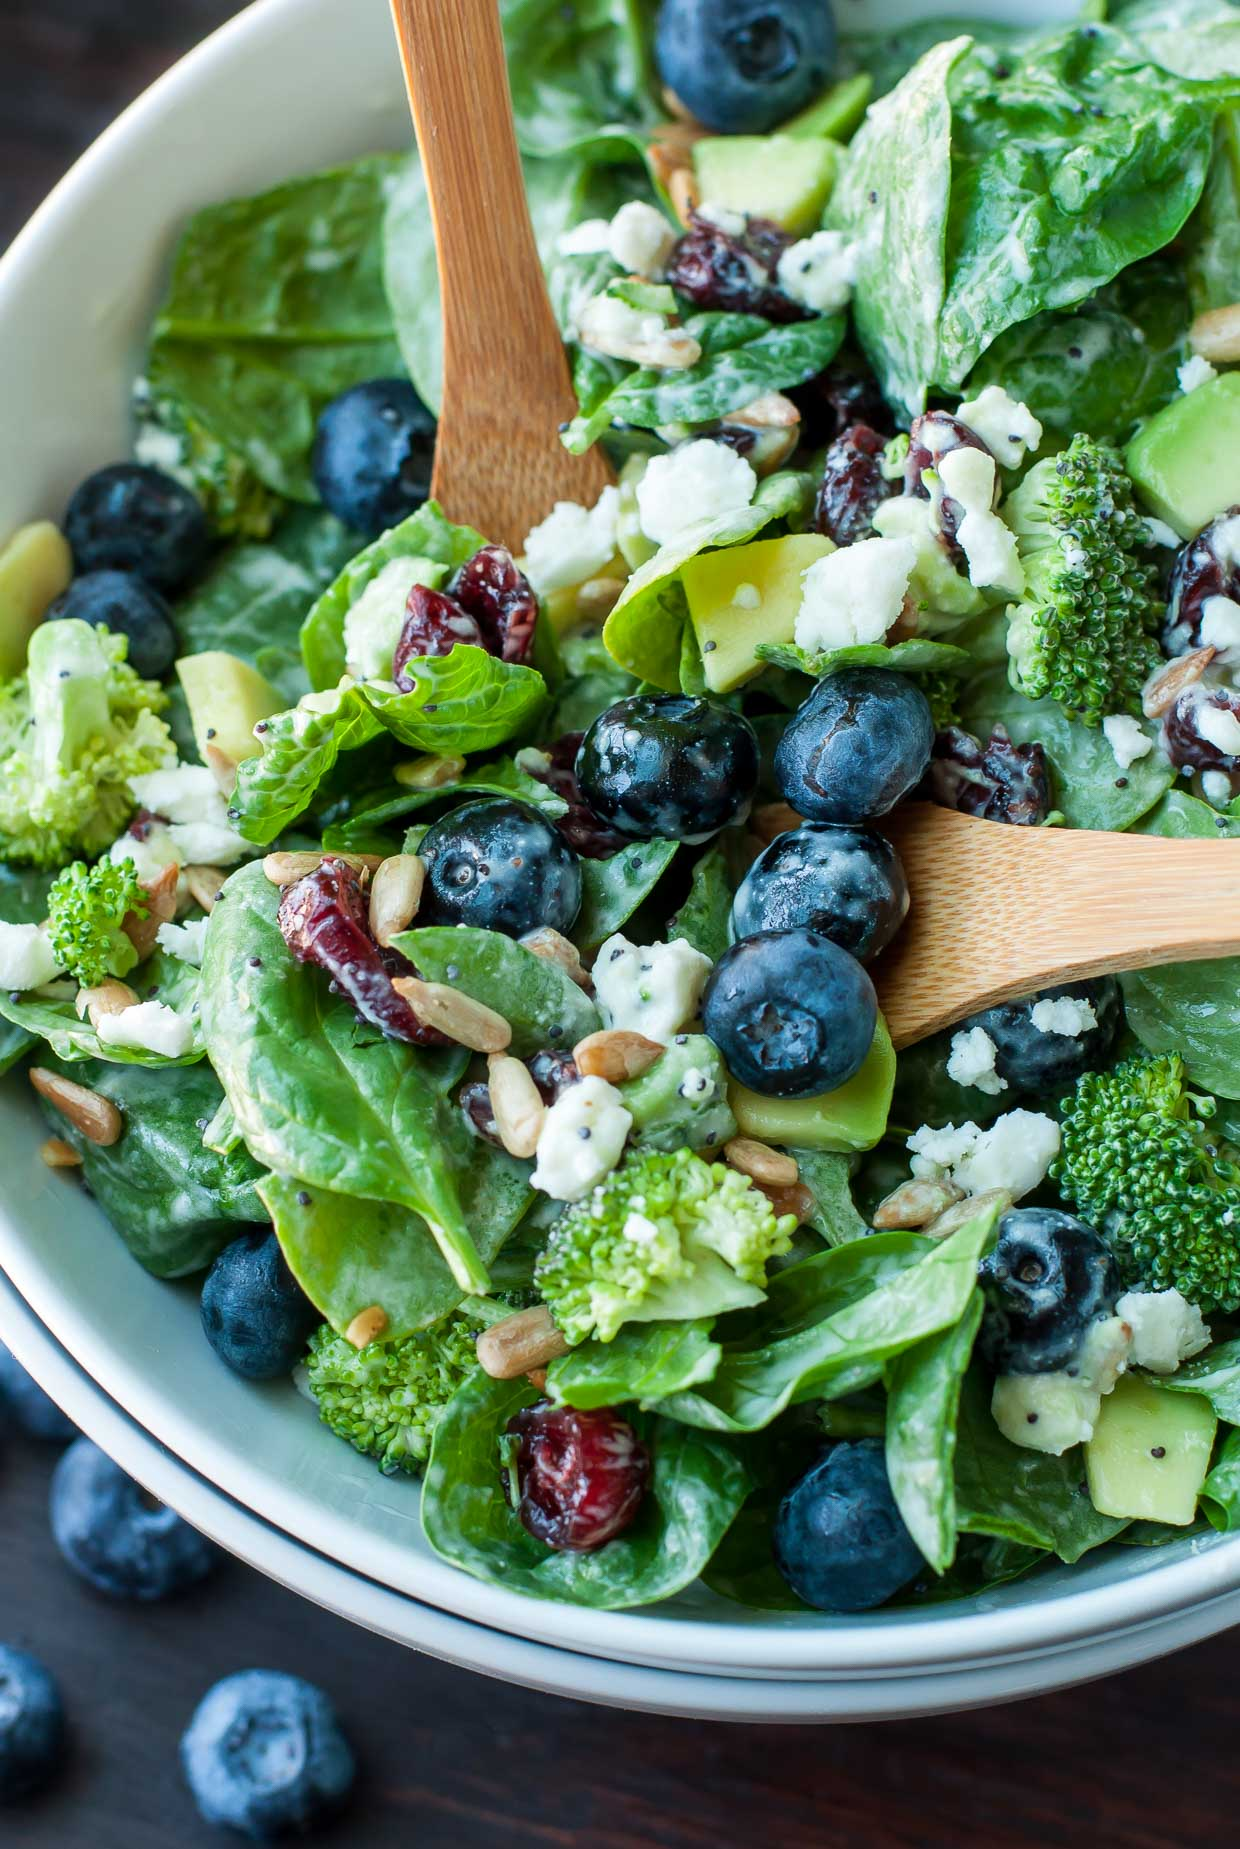 Blueberry Broccoli Spinach Salad Poppyseed Ranch dressing recipe 7143 5 Summer Salads with the beachhouse wines that will blow your guests away